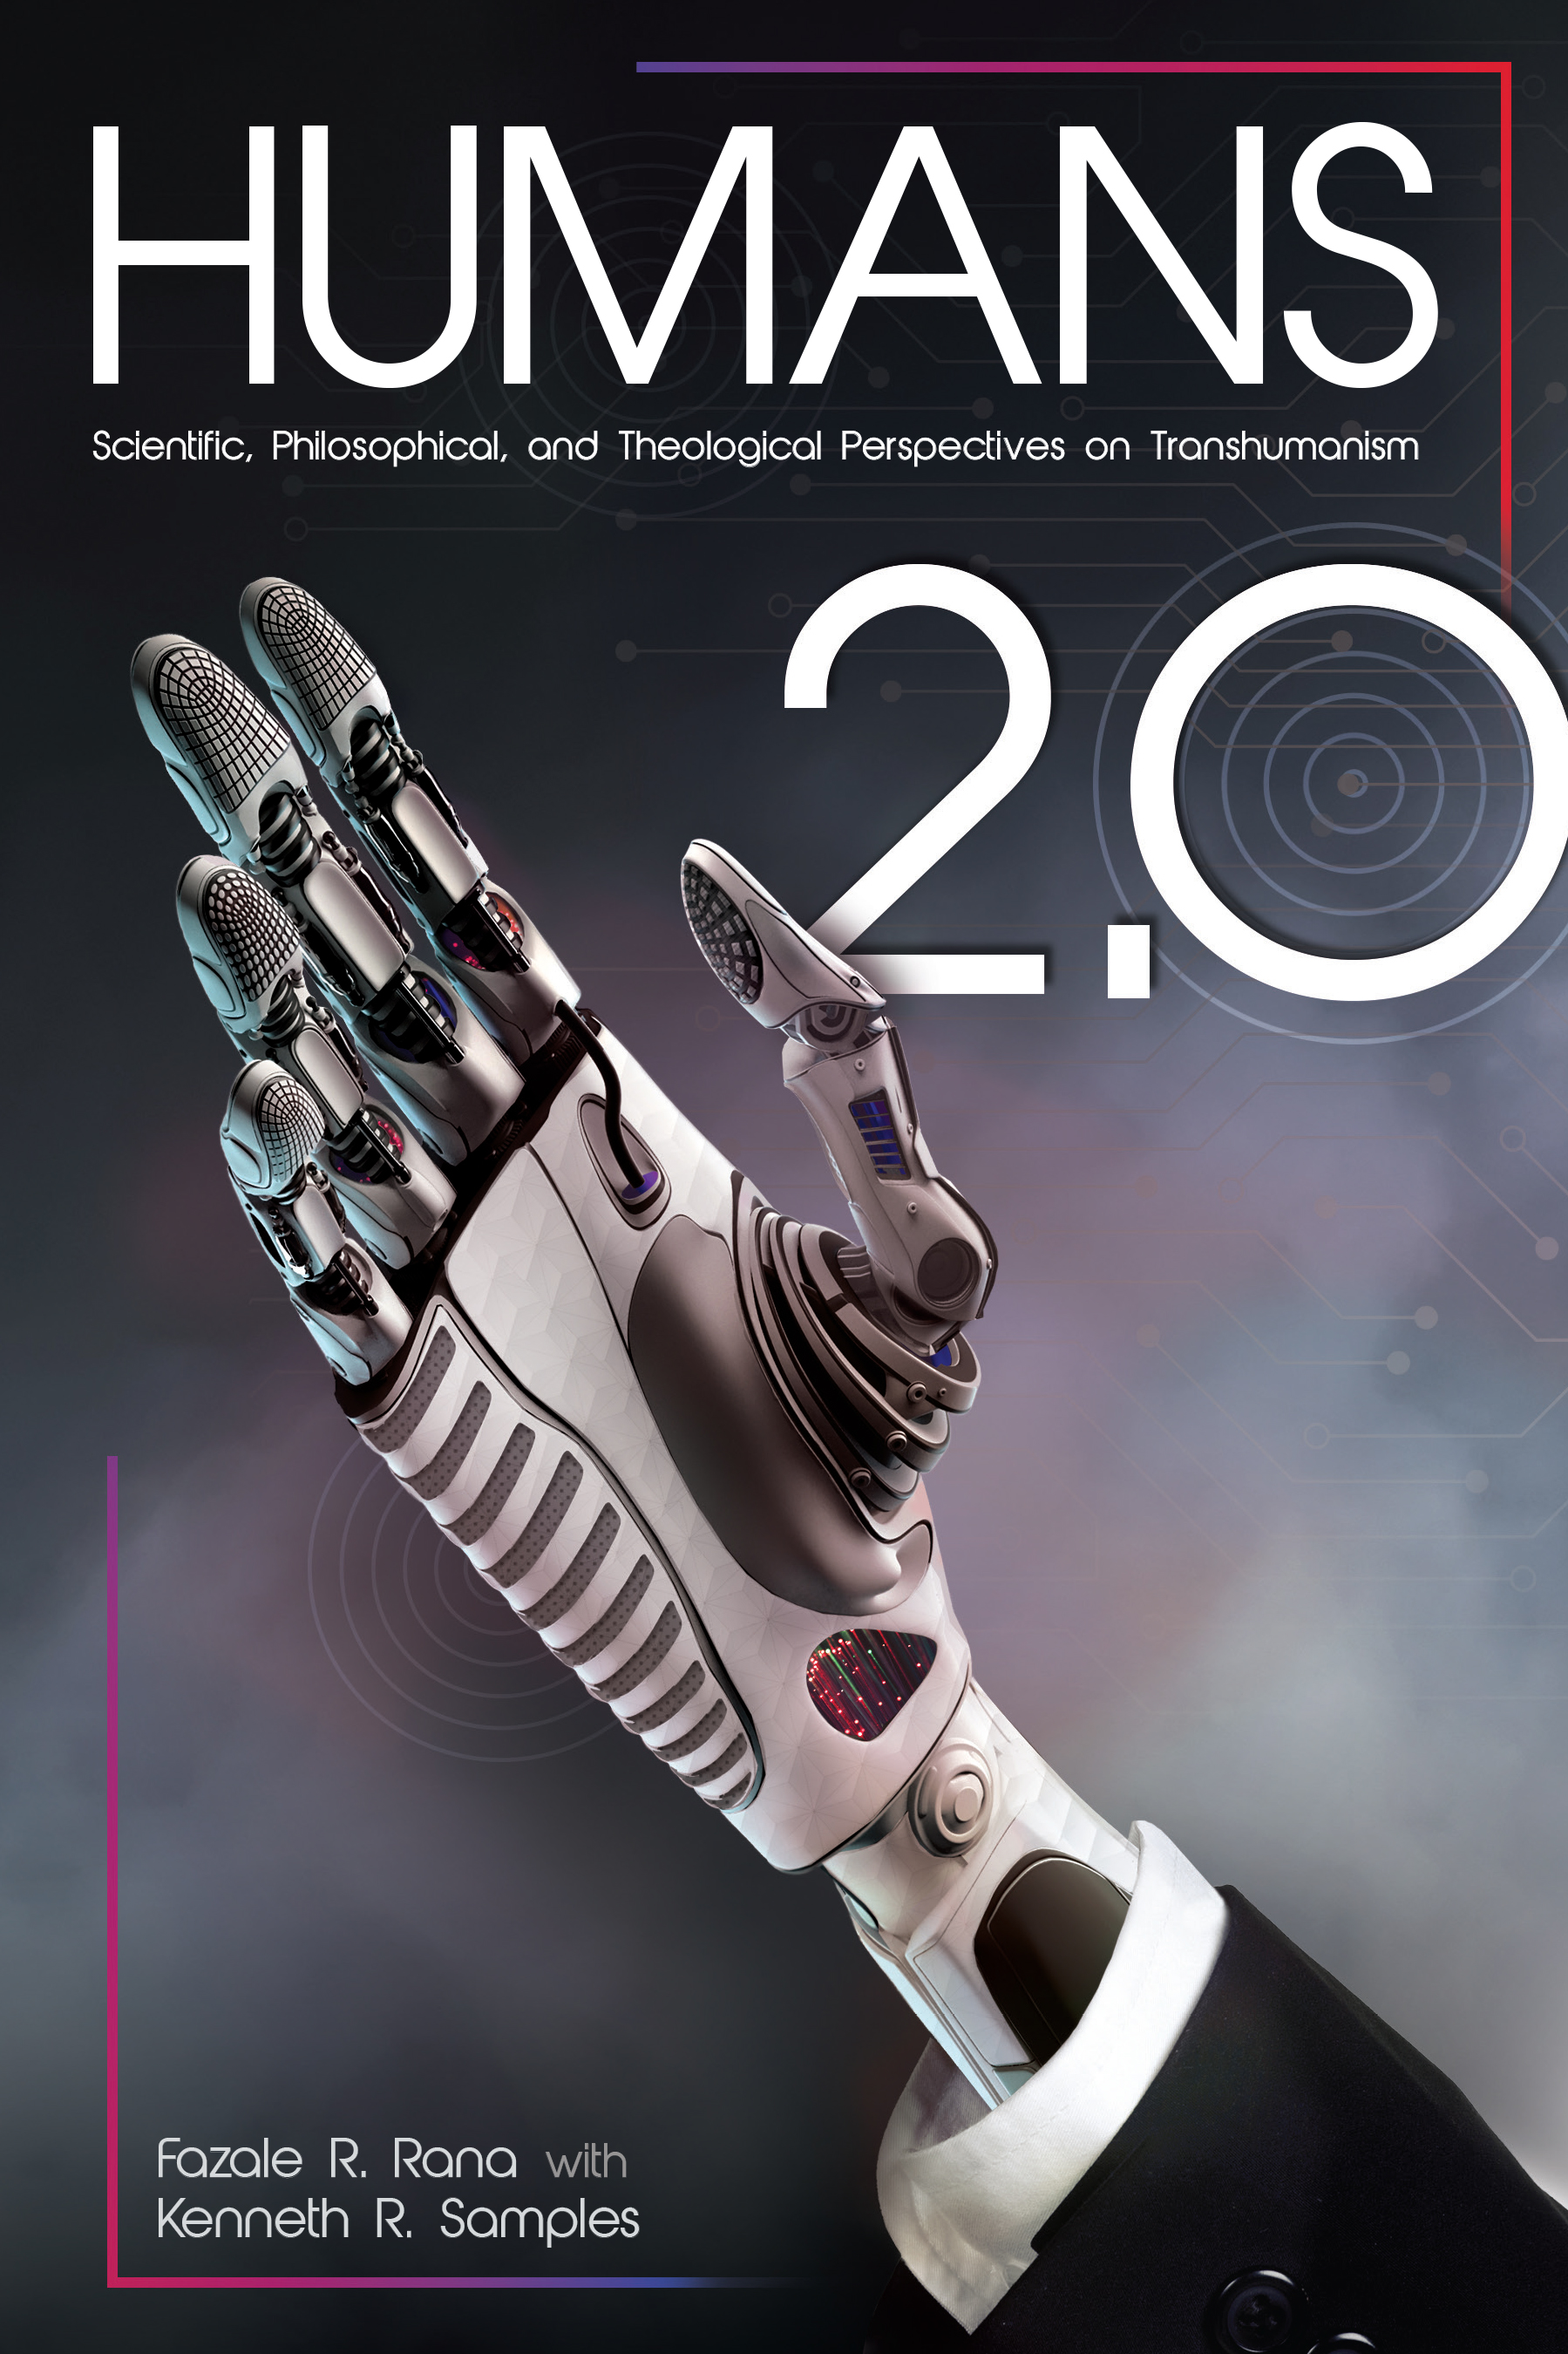 Humans 2.0: Scientific, Philosophical, and Theological Perspectives on Transhumanism Image